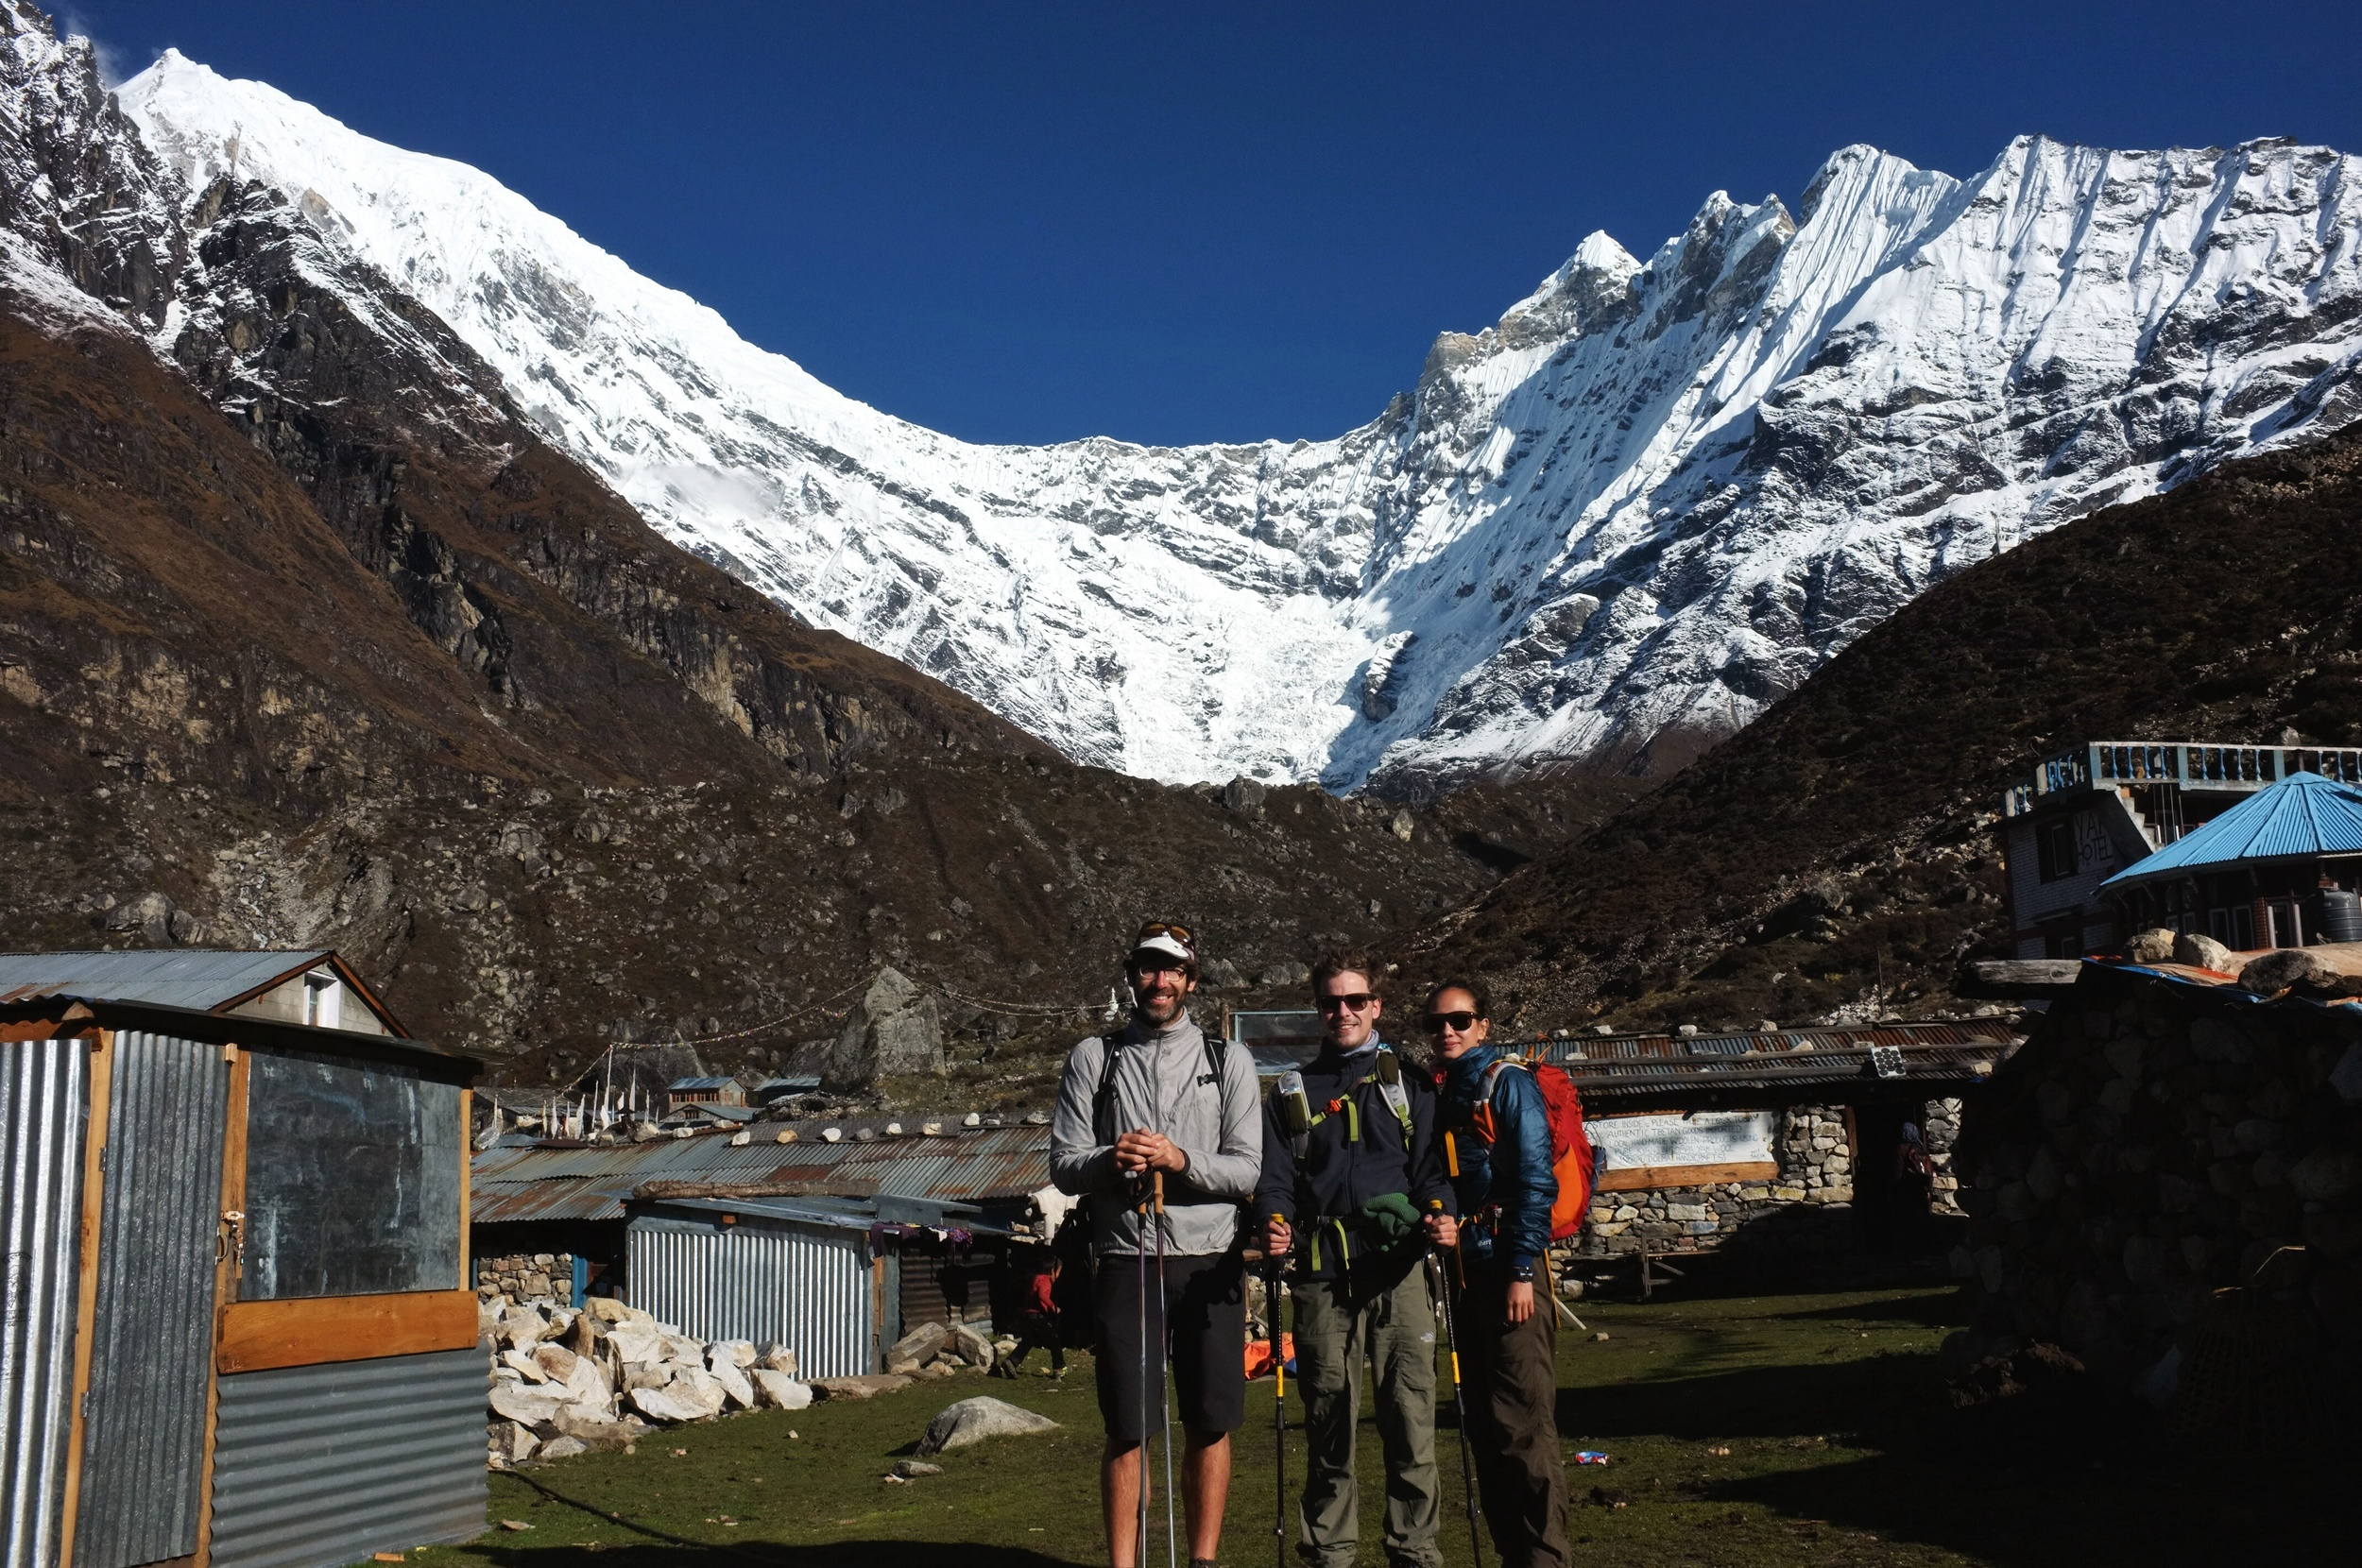 23,000 ft (7,246m) Langtang Lirung in the background, officially the tallest mountain I've laid eyes on.